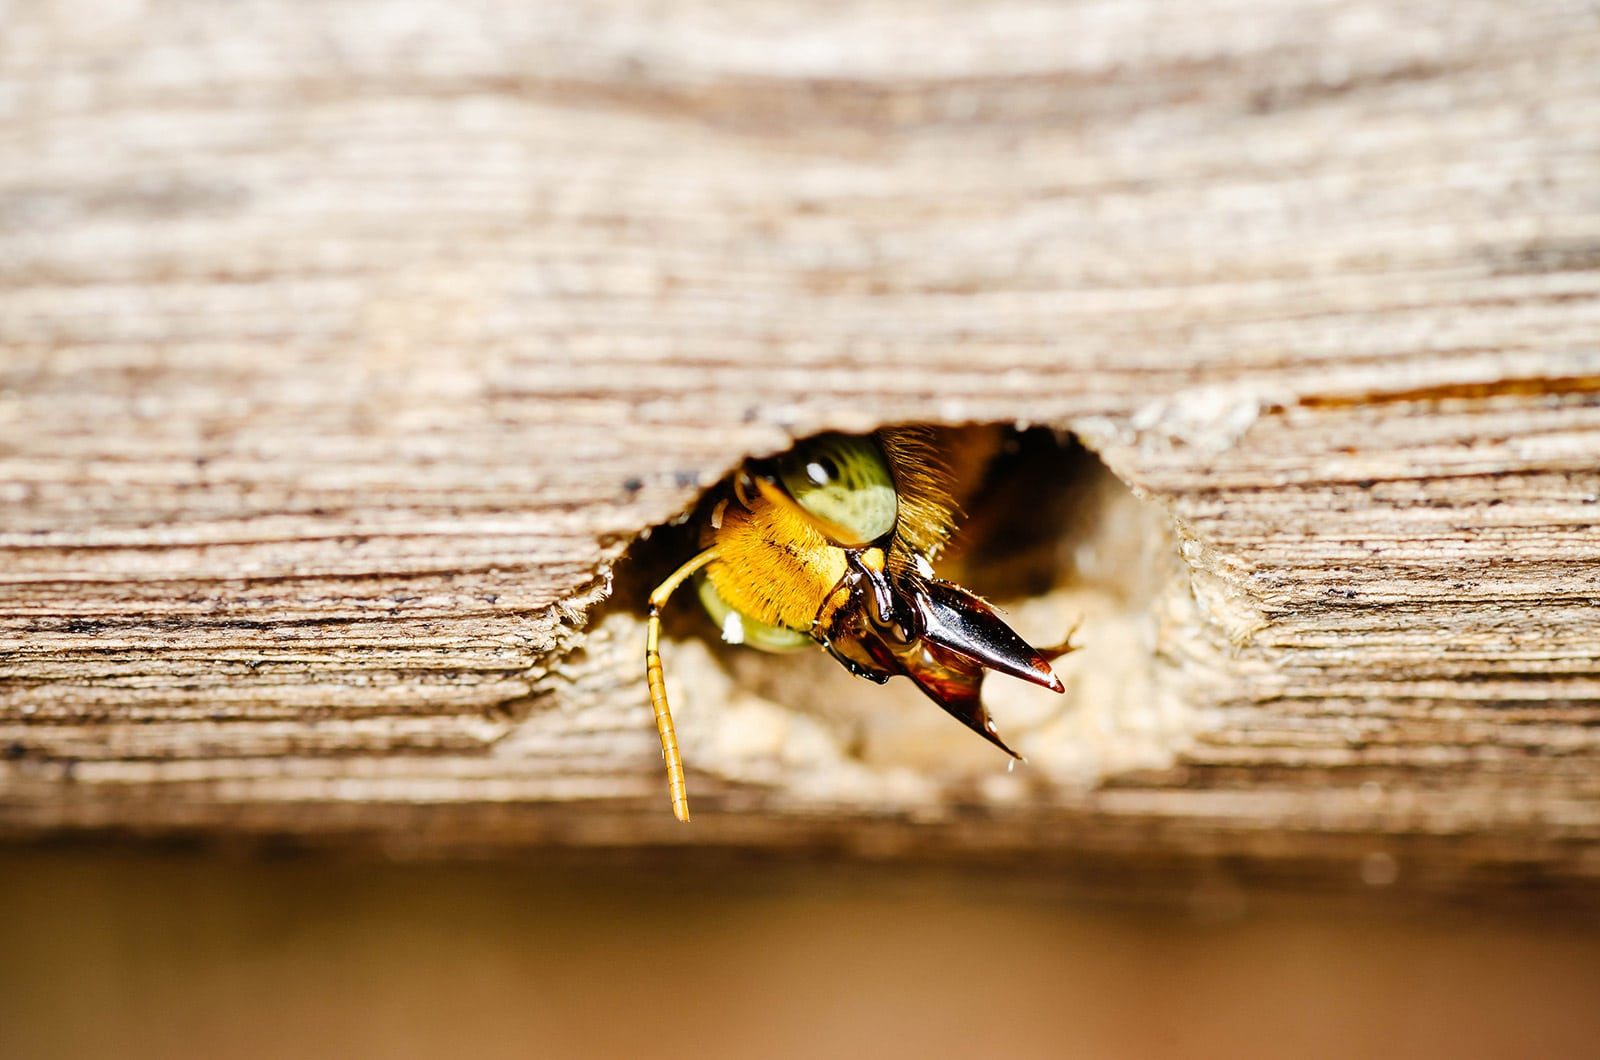 Carpenter bee peering out of a hole in the wood